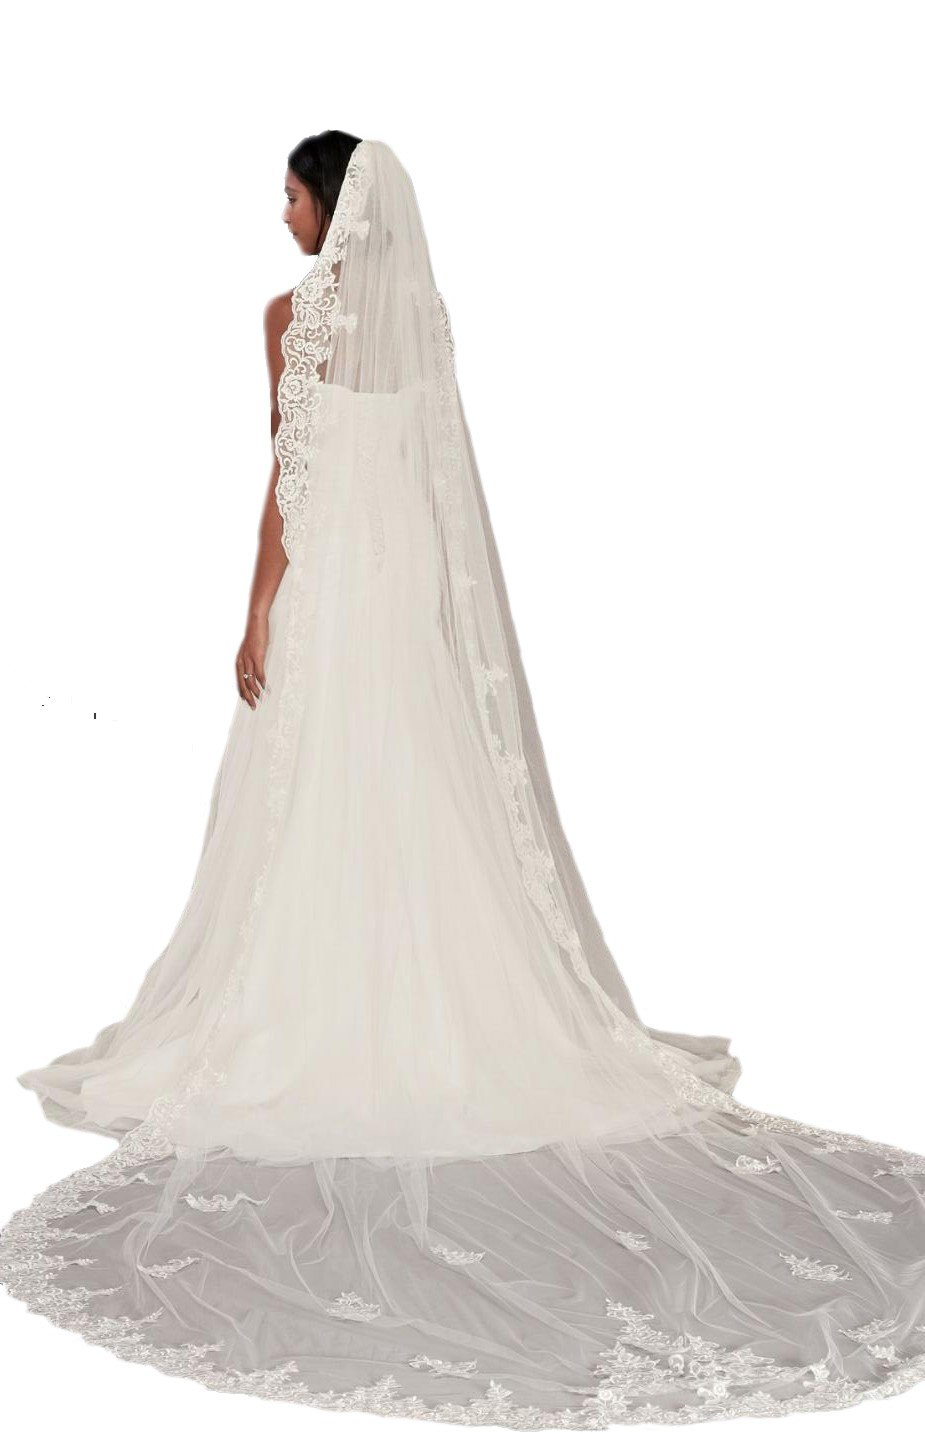 Passat Pale Ivory Single-Tier 3M Cathedral Corded Lace sparkle wedding veil with Scalloped Edge DB46